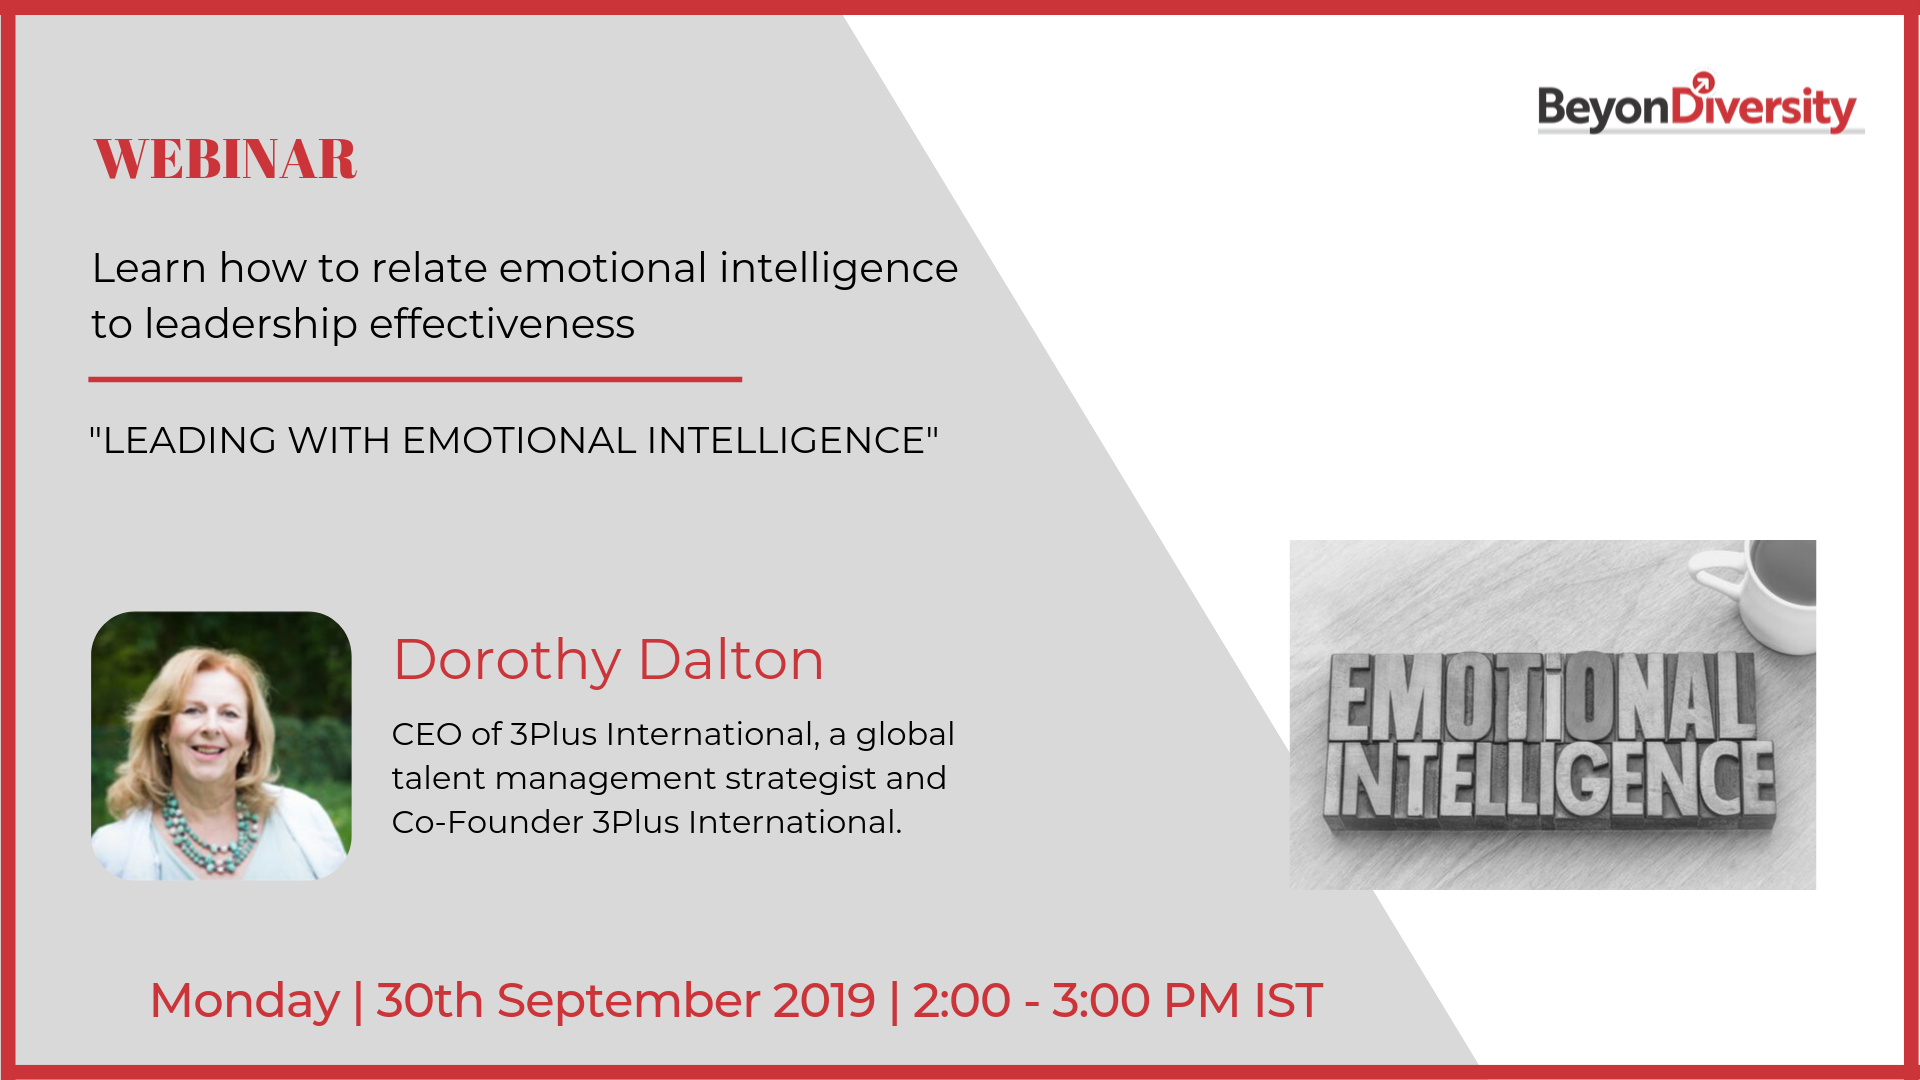 Leading with Emotional Intelligence - Webinar with Dorothy Dalton